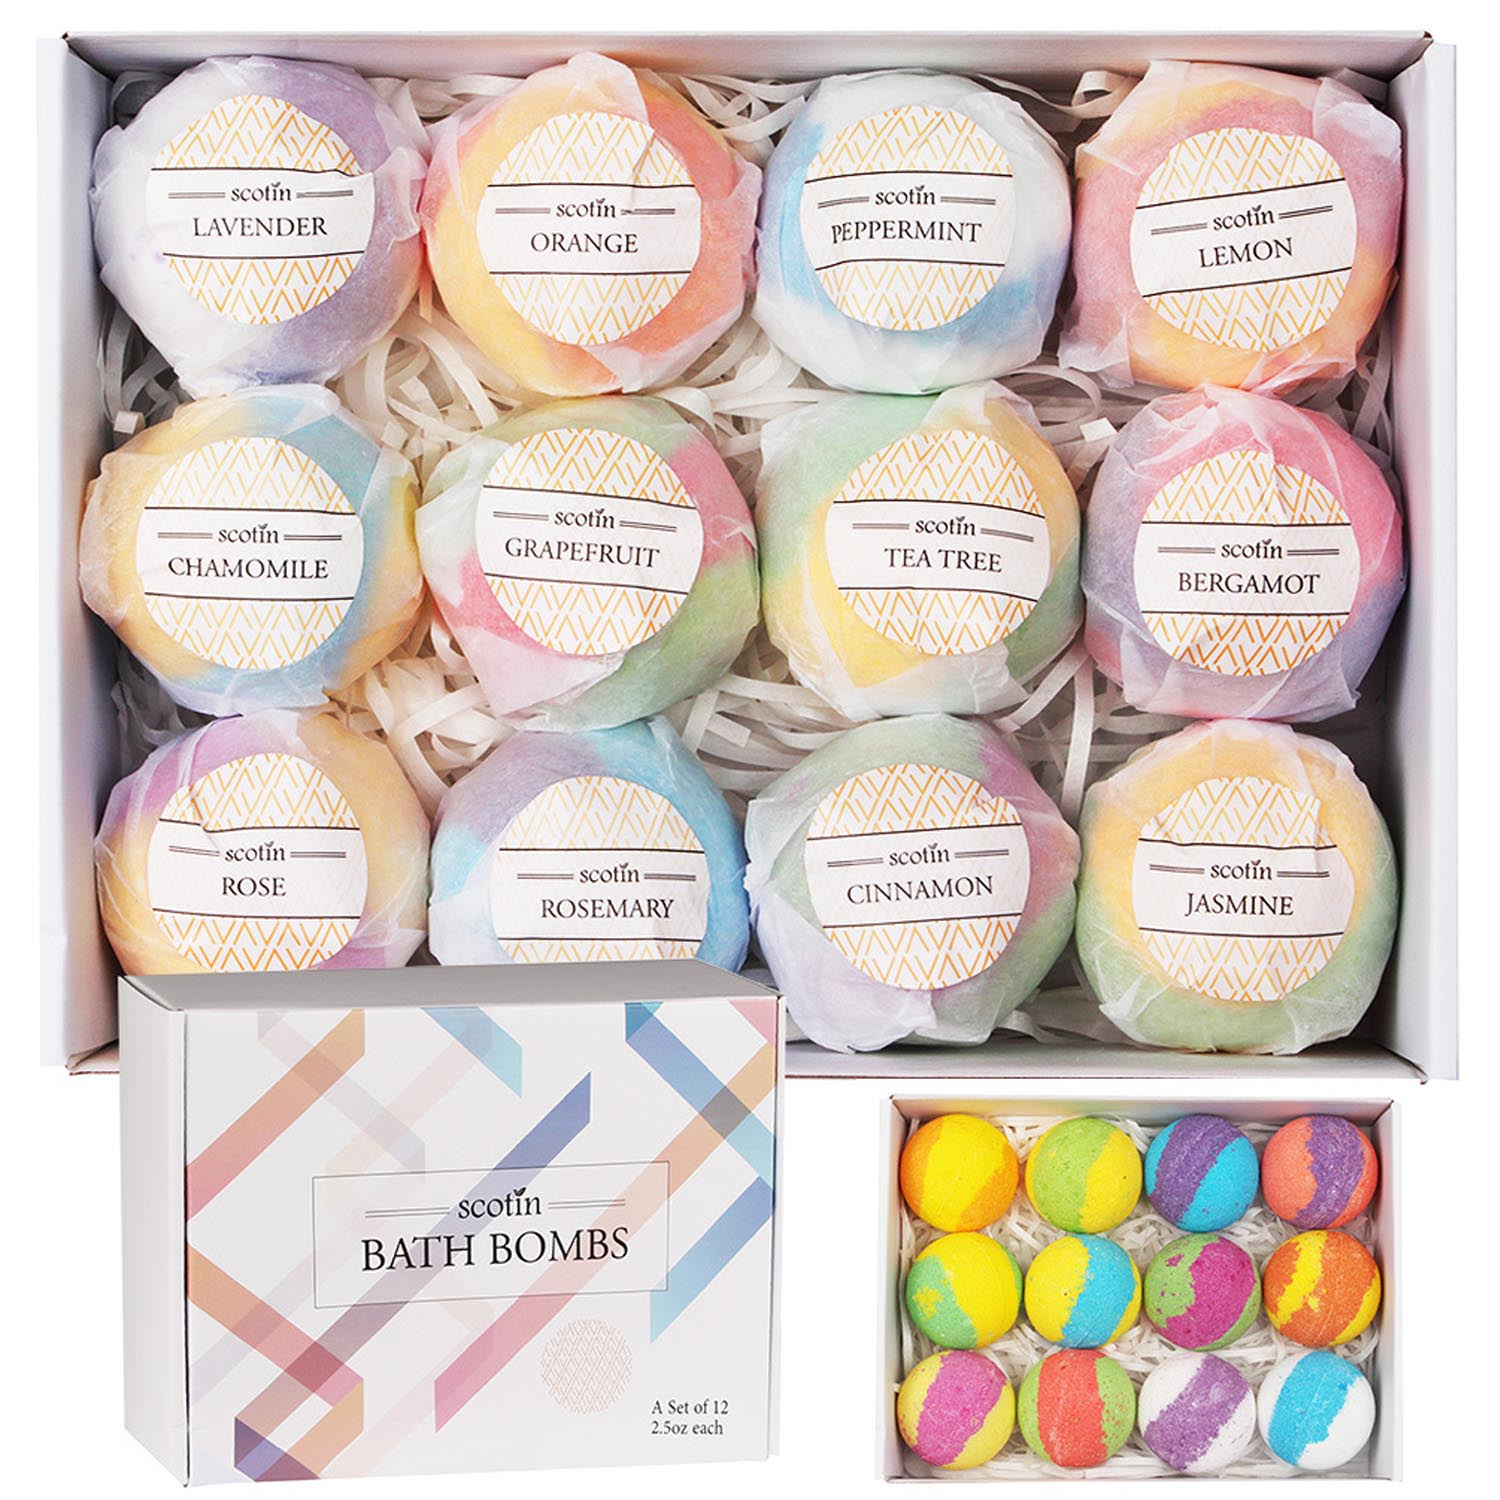 12 Pcs Natural Spa Essential Oil Bath Bombs Ball Set for Girlfriends Women Moms Christmas Birthday New Year Gifts Salt Bath Ball